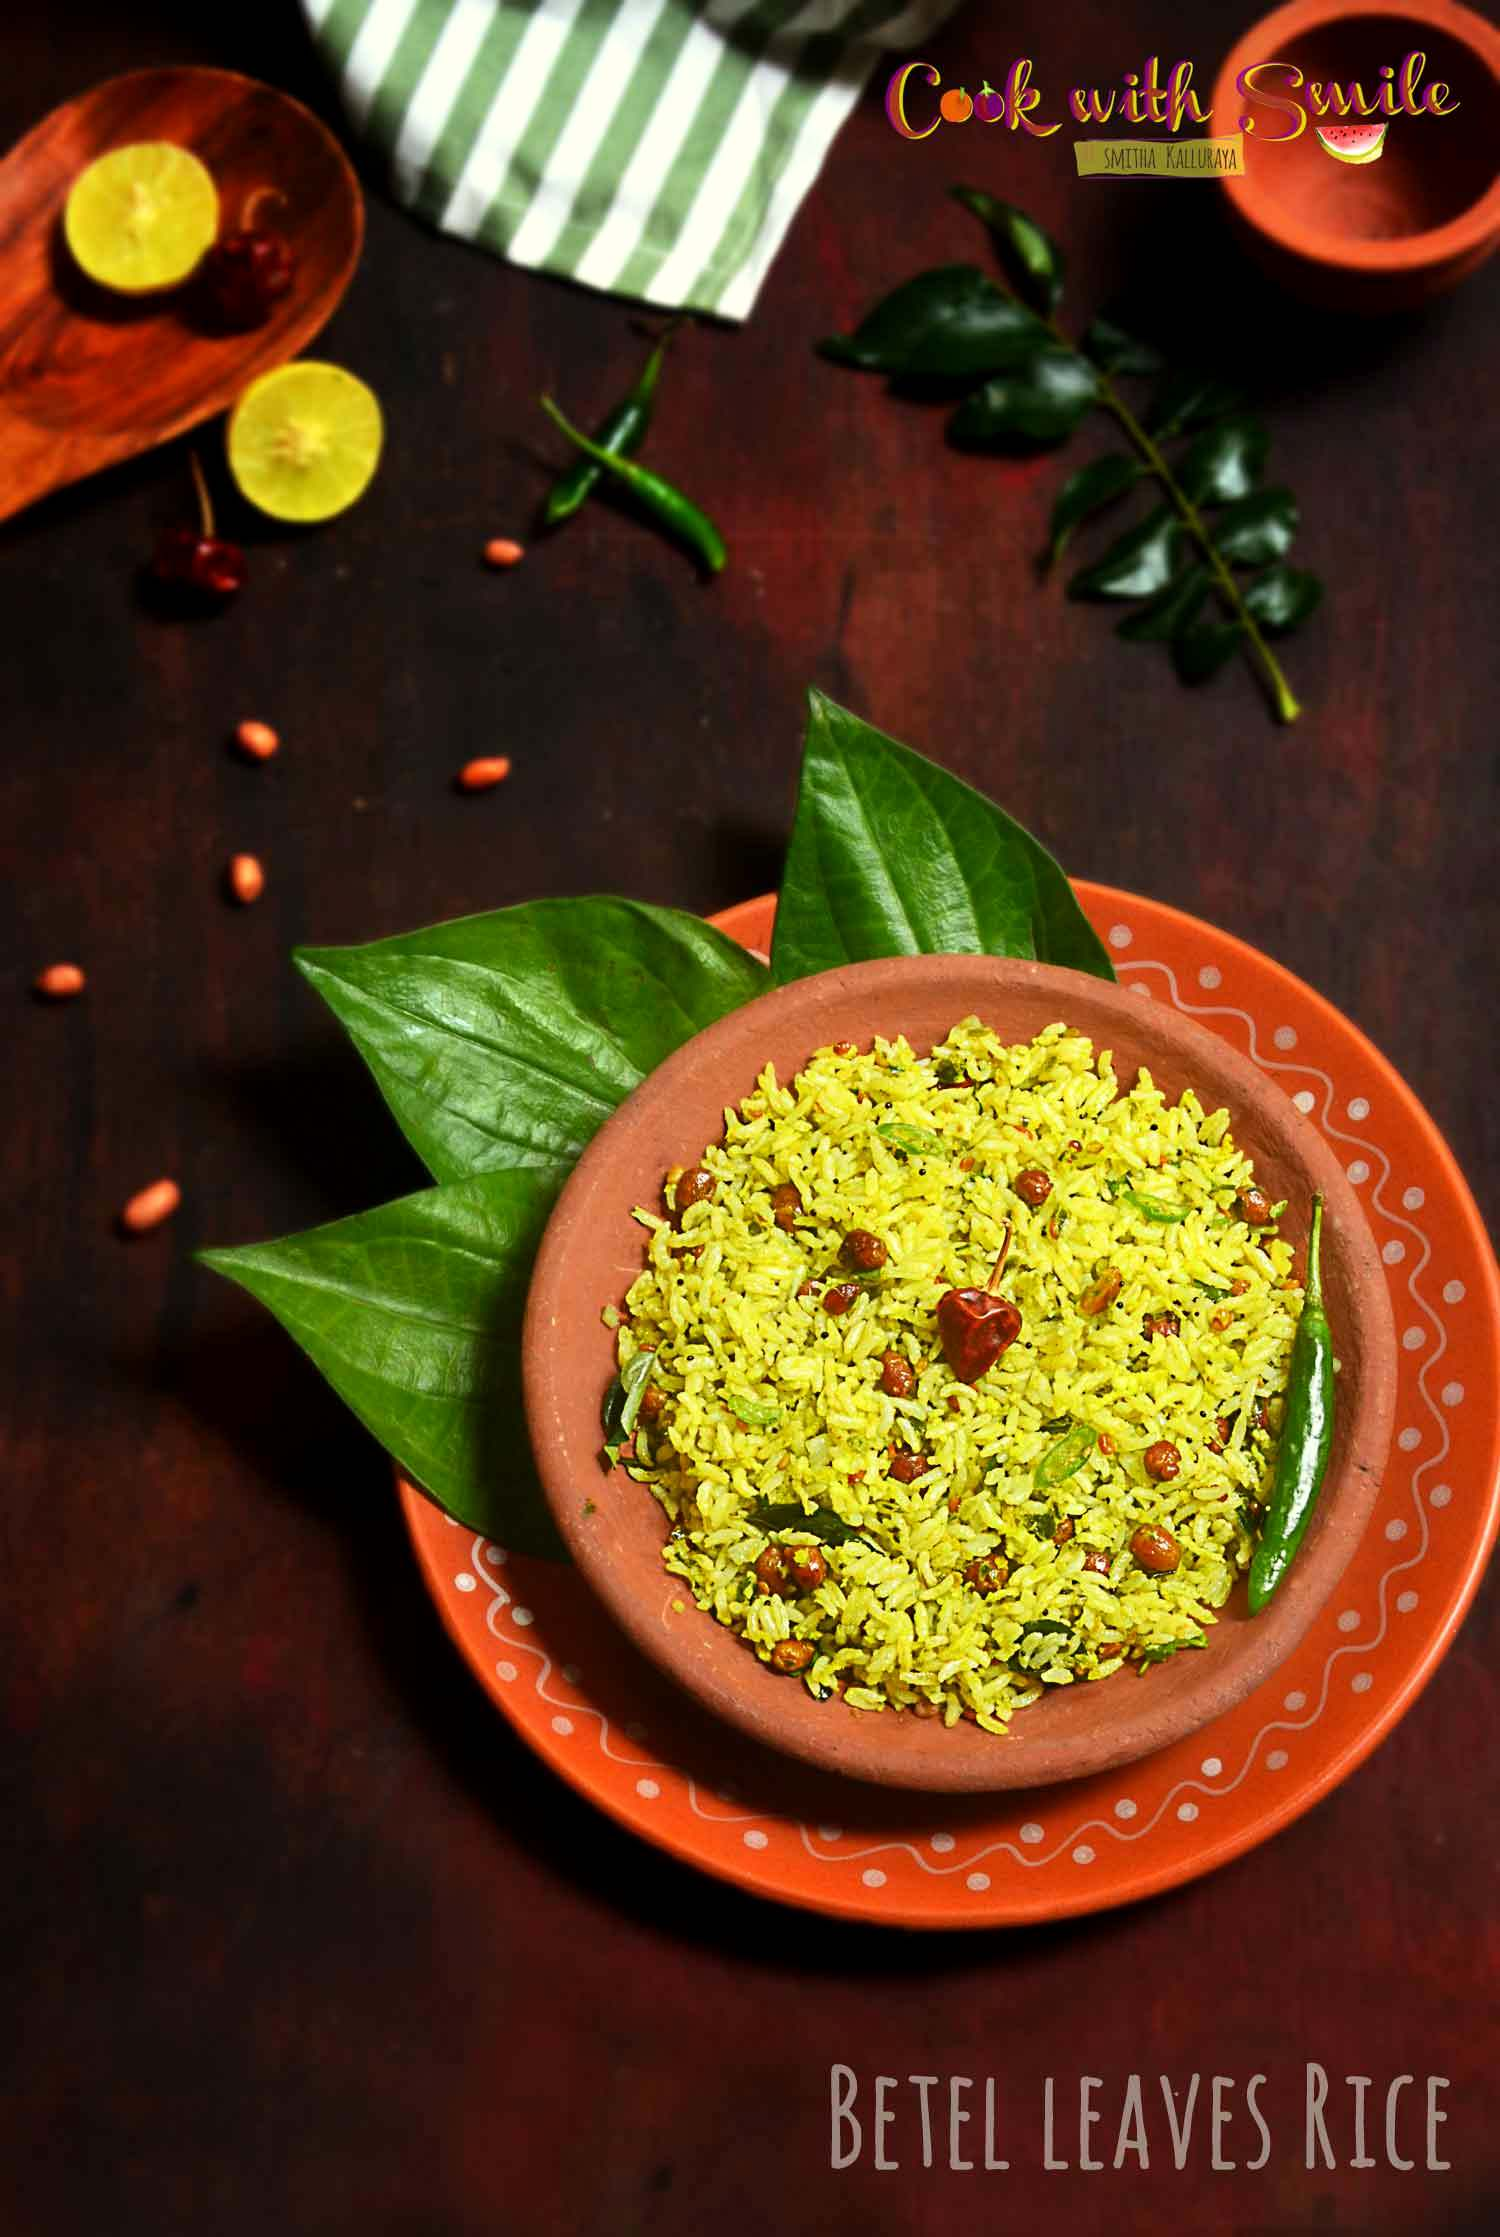 BETEL LEAVES RICE RECIPE